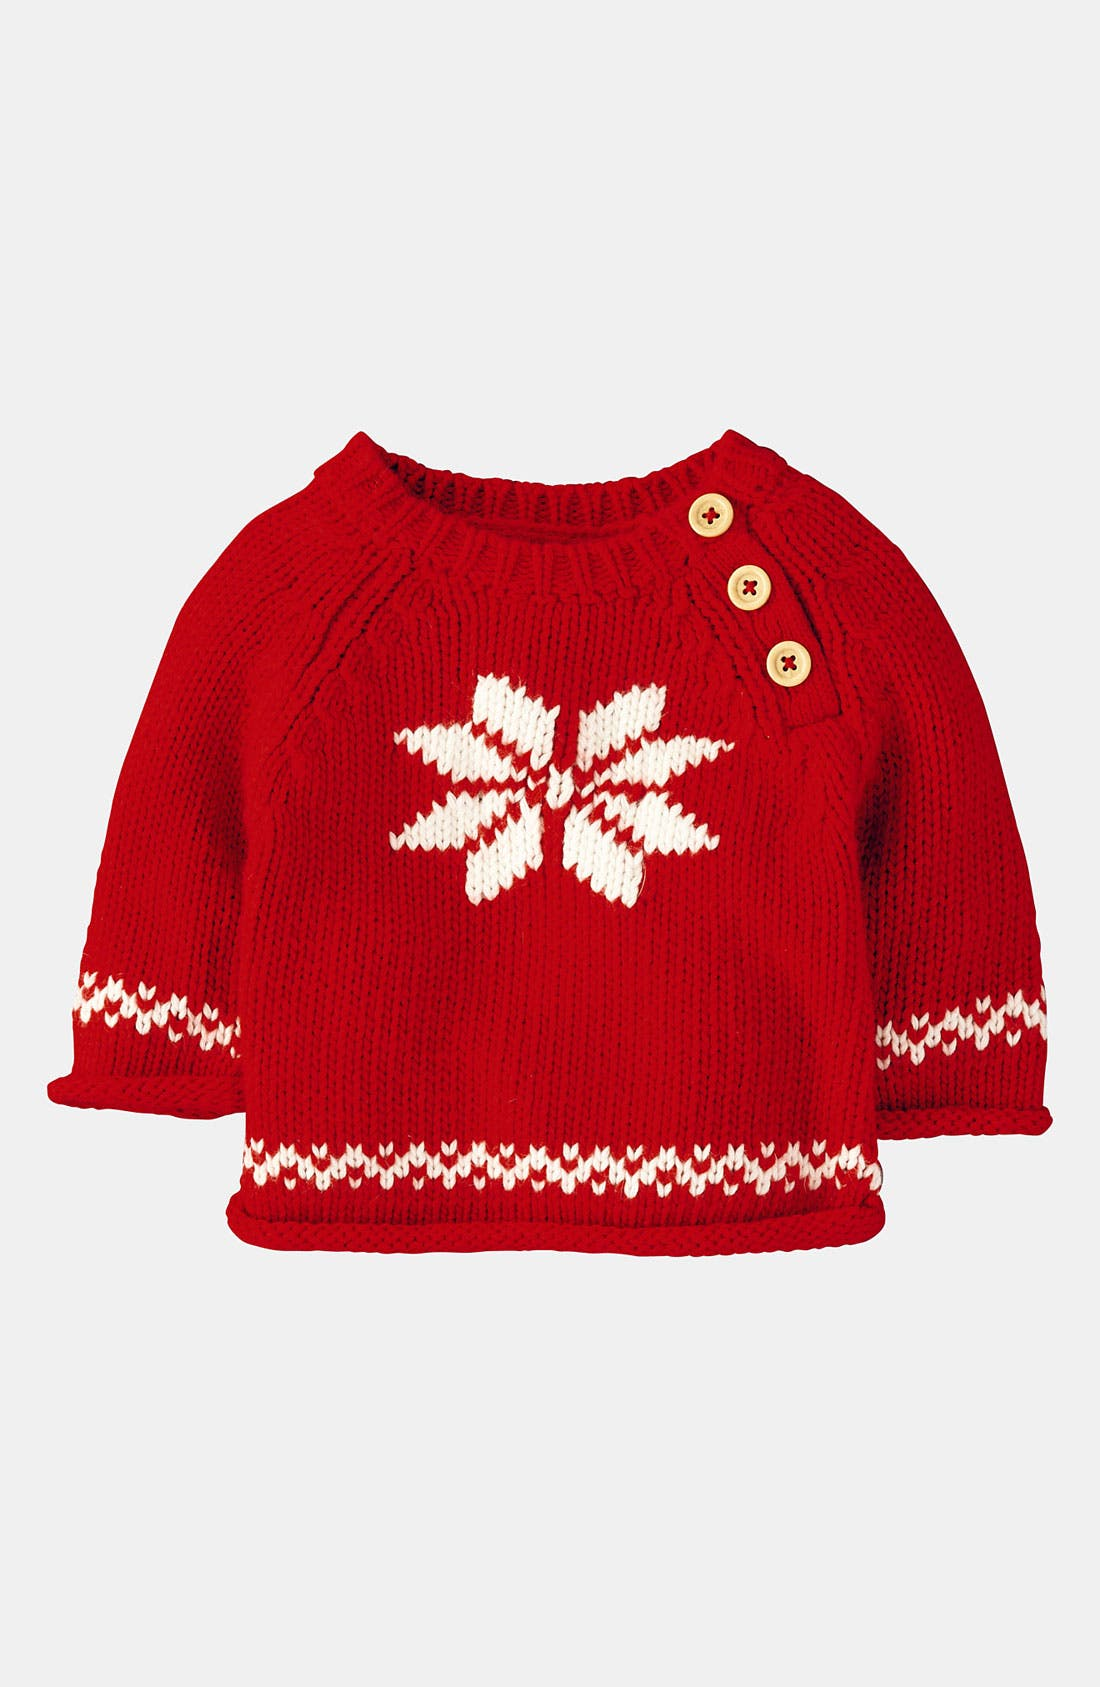 Alternate Image 1 Selected - Mini Boden 'Winter' Sweater (Infant)